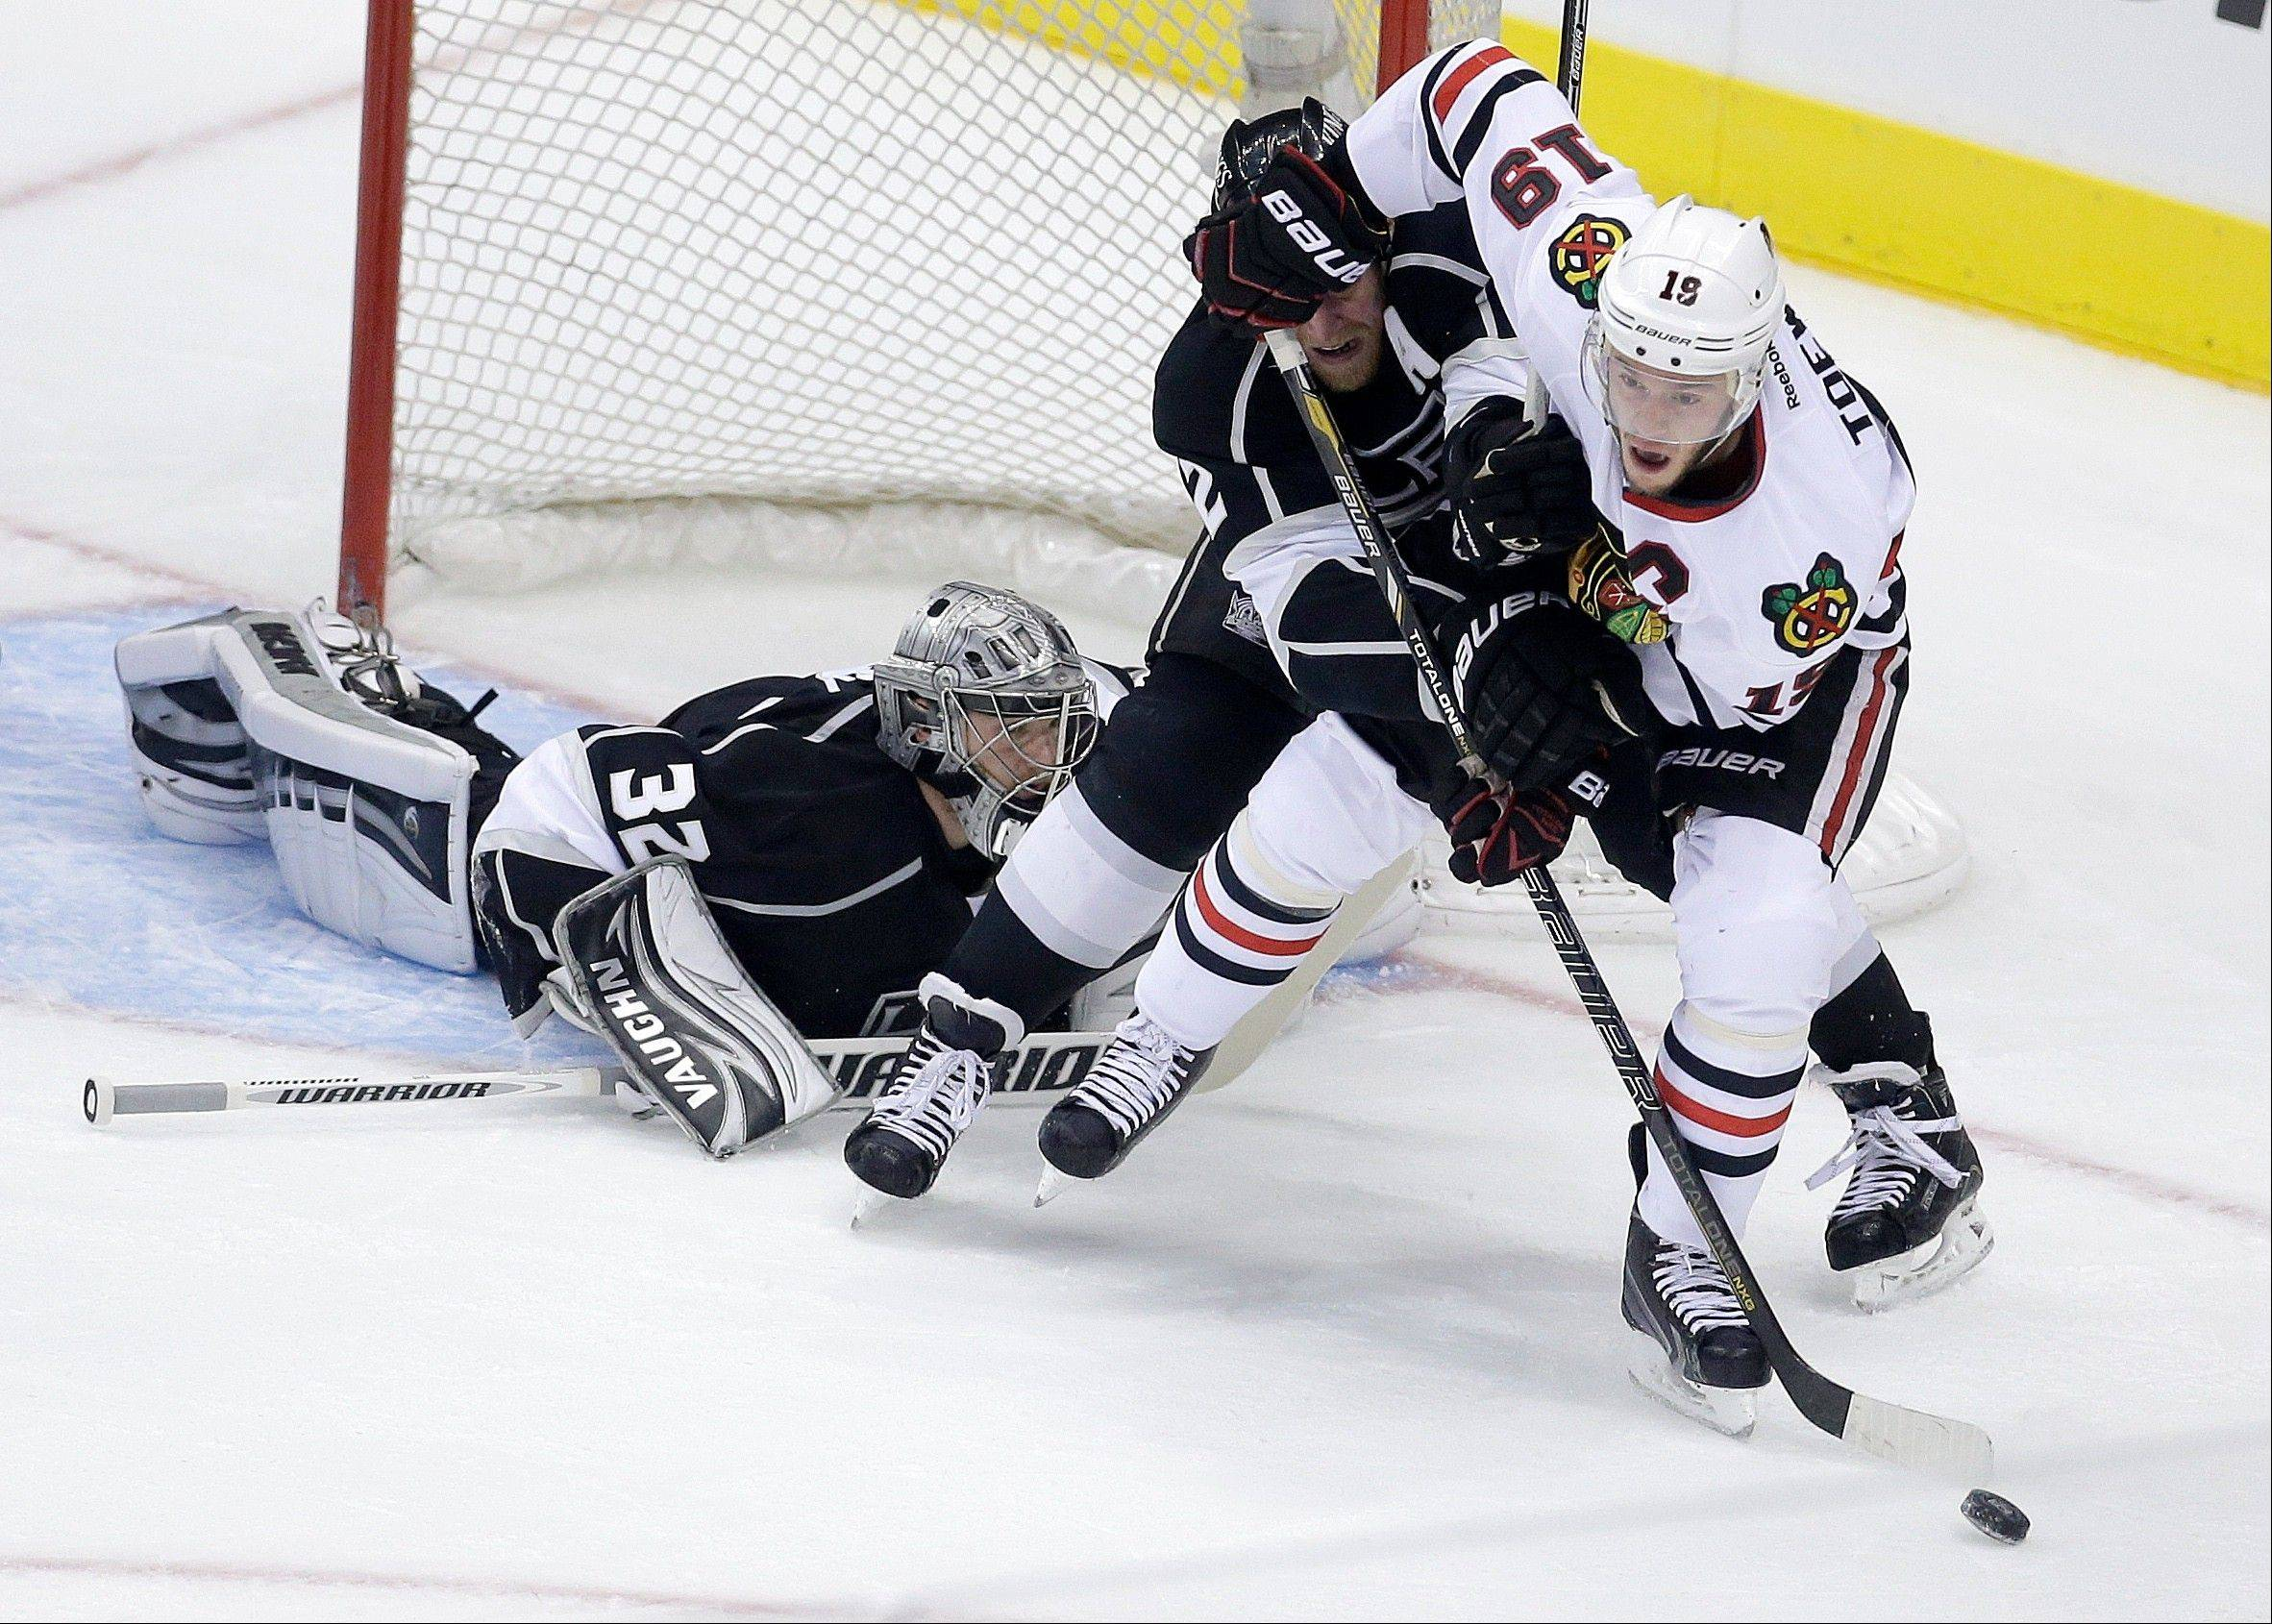 Chicago Blackhawks center Jonathan Toews, right, works the puck against Los Angeles Kings defenseman Matt Greene, middle, and goalie Jonathan Quick during the first period in Game 4 of the NHL hockey Stanley Cup playoffs Western Conference finals, in Los Angeles on Thursday, June 6, 2013.